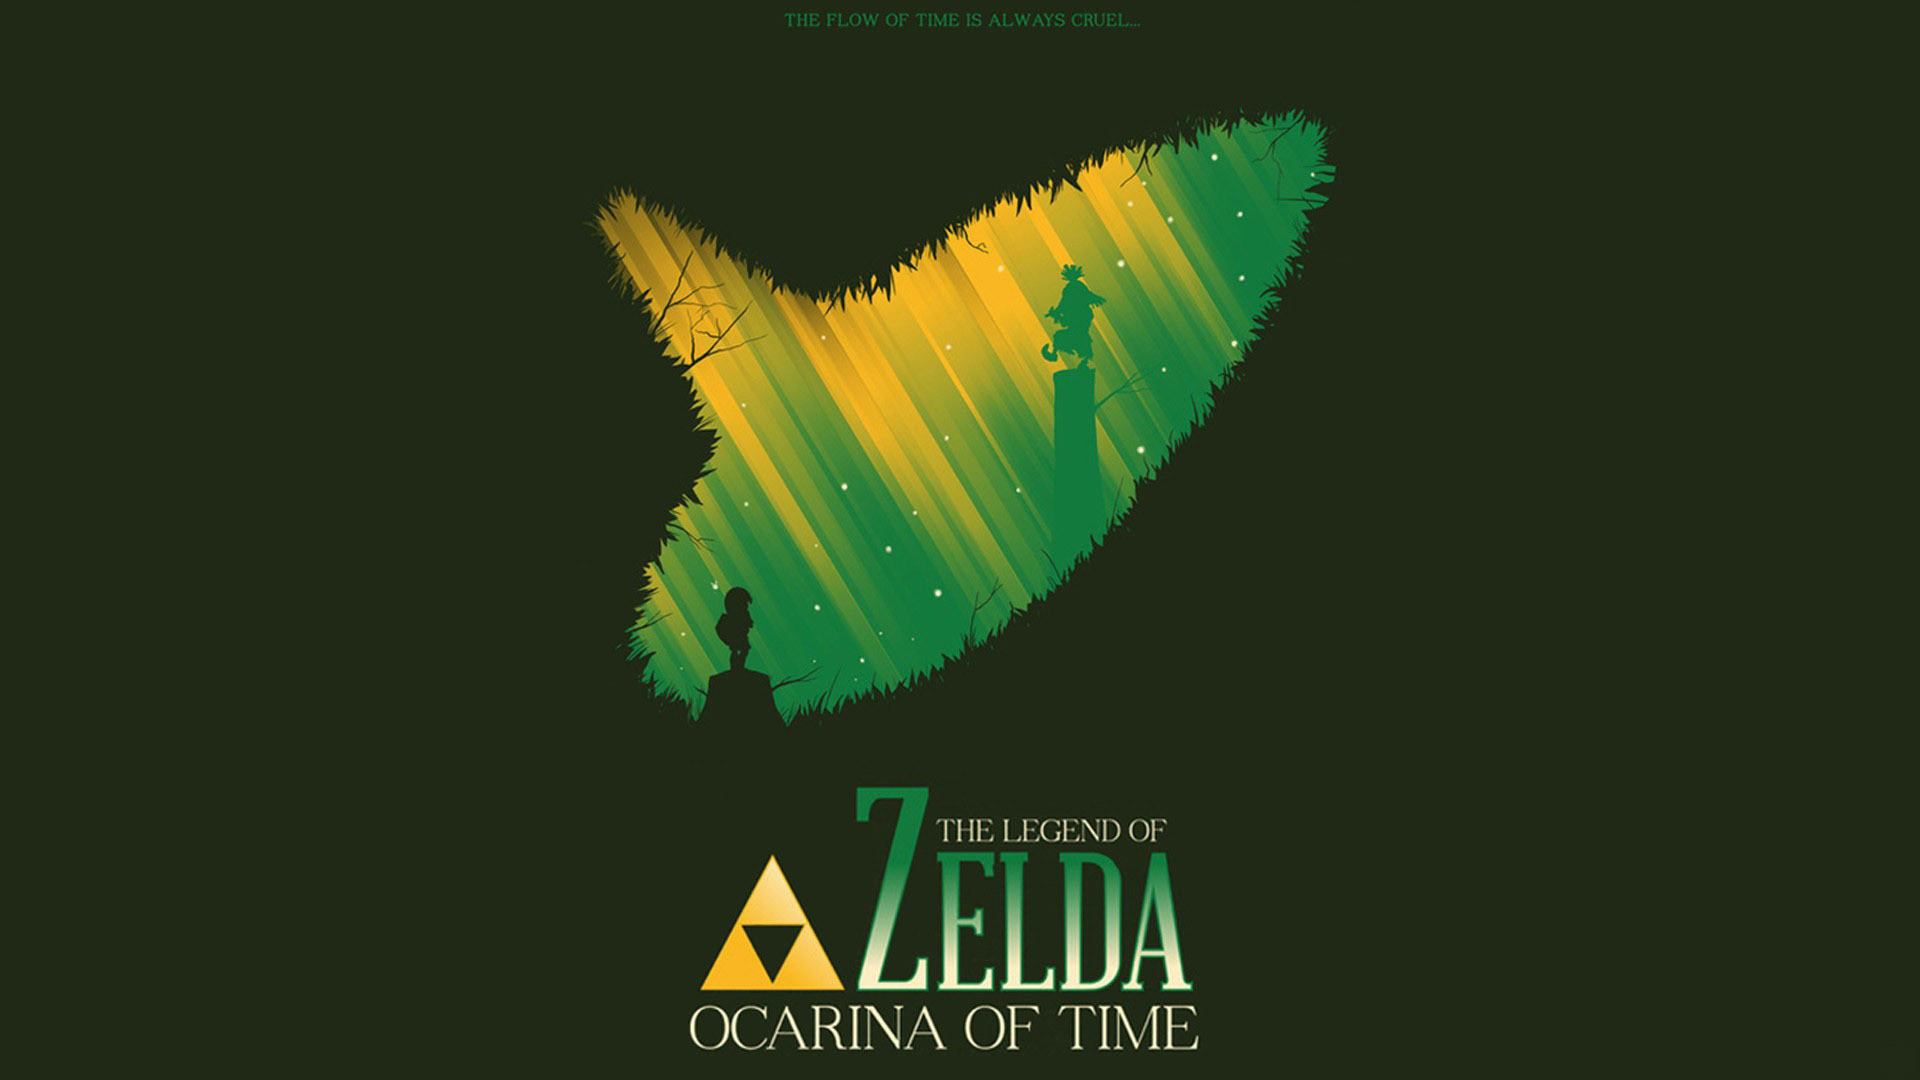 1920x1080 ... The Legend of Zelda: Ocarina of Time 3D - Fanart - Background ...